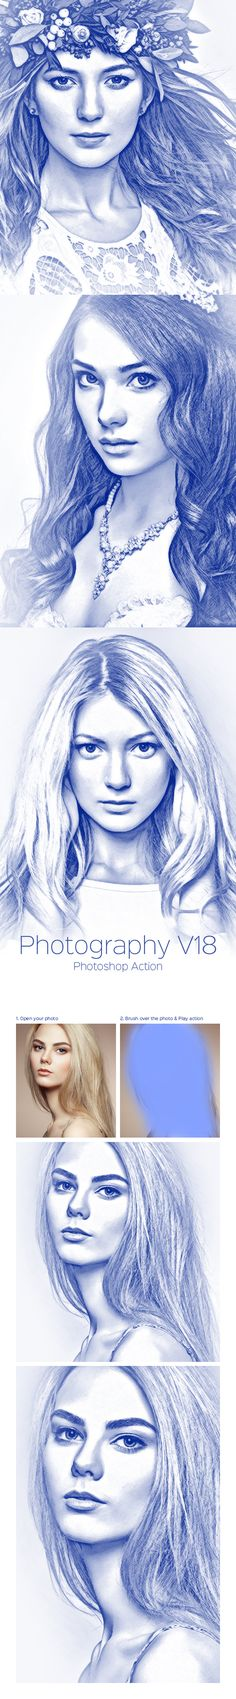 Photography Photoshop Action. Download here: https://graphicriver.net/item/photography-v18/17265215?ref=ksioks